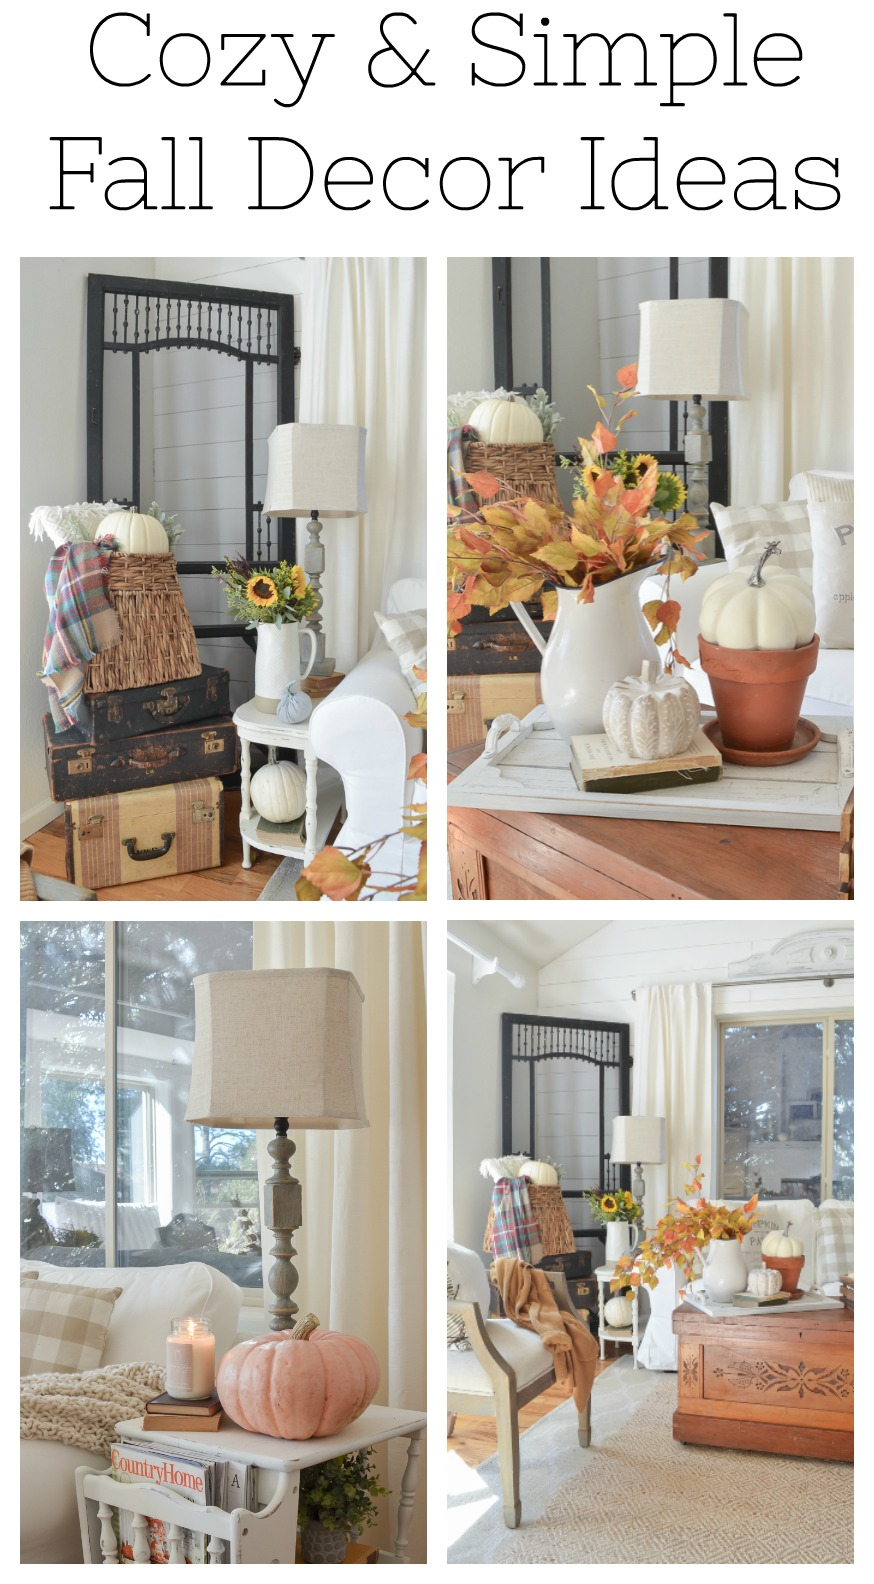 Cozy Fall Decor in the Front Room - Little Vintage Nest